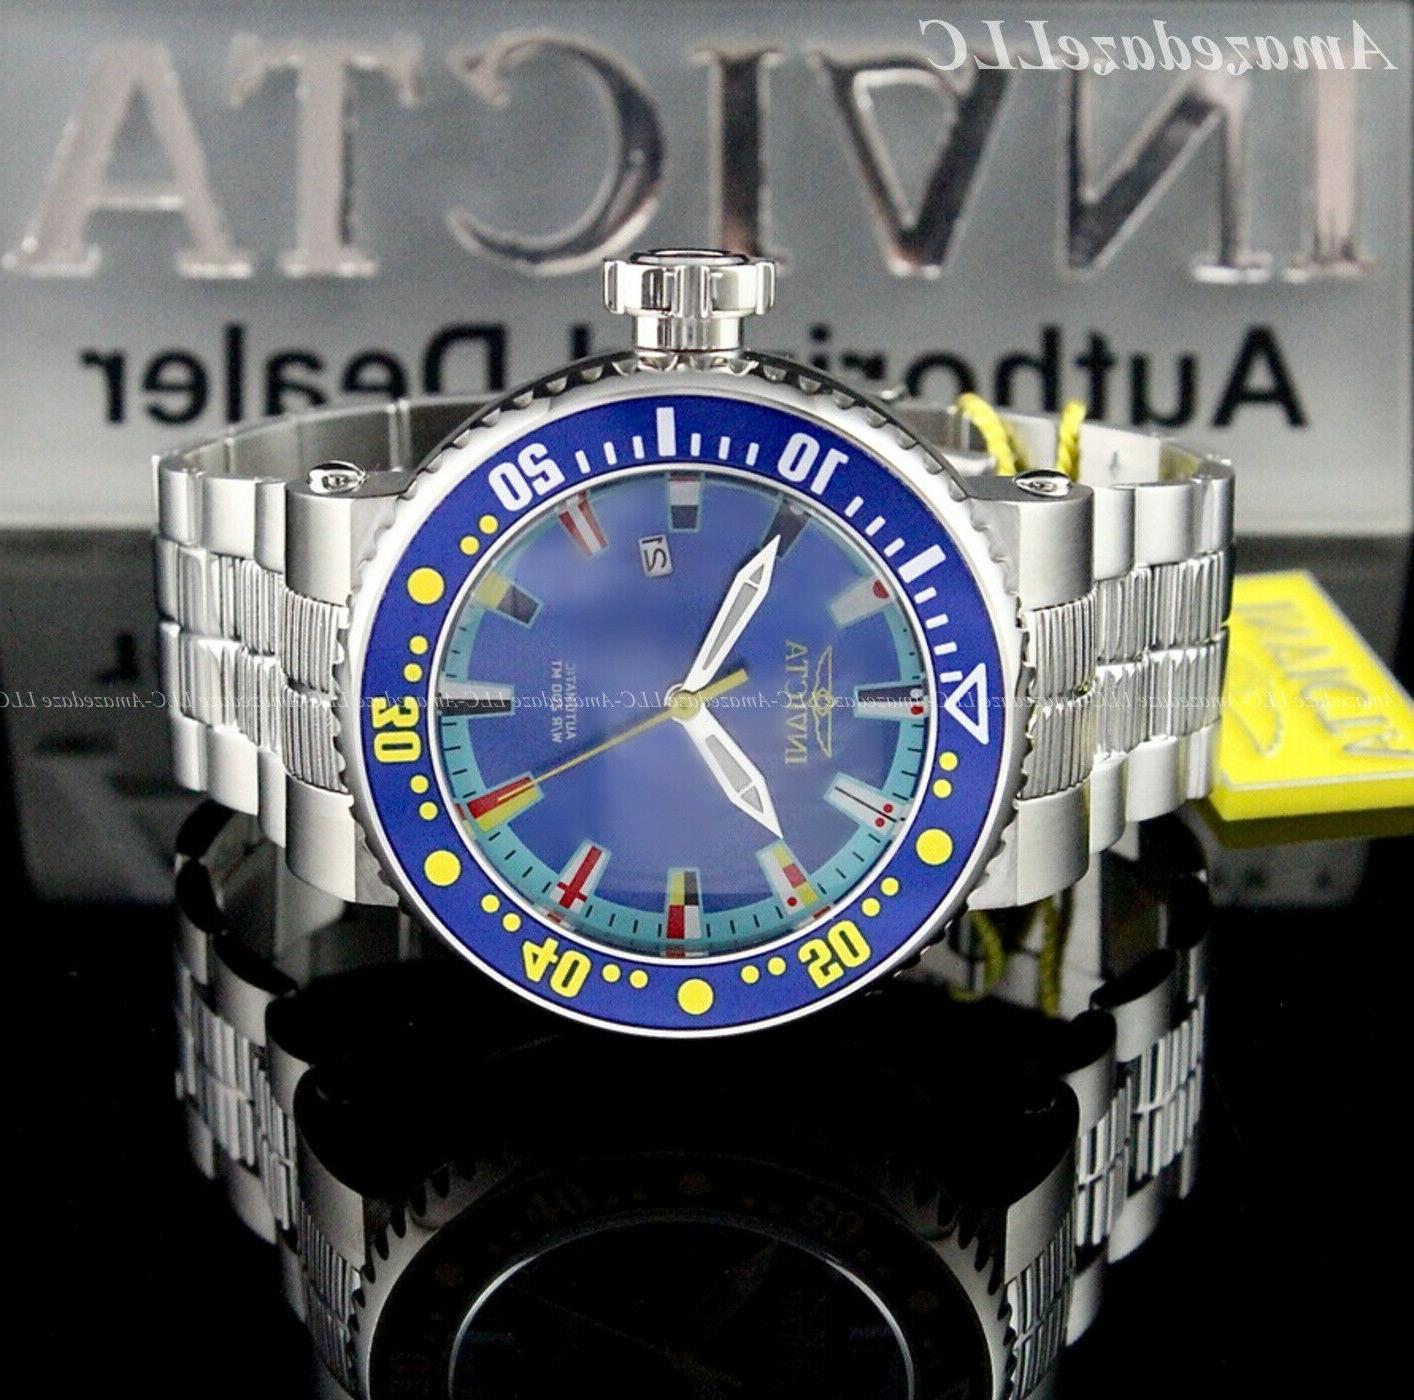 Invicta Men PRO Dial Stainless Watch